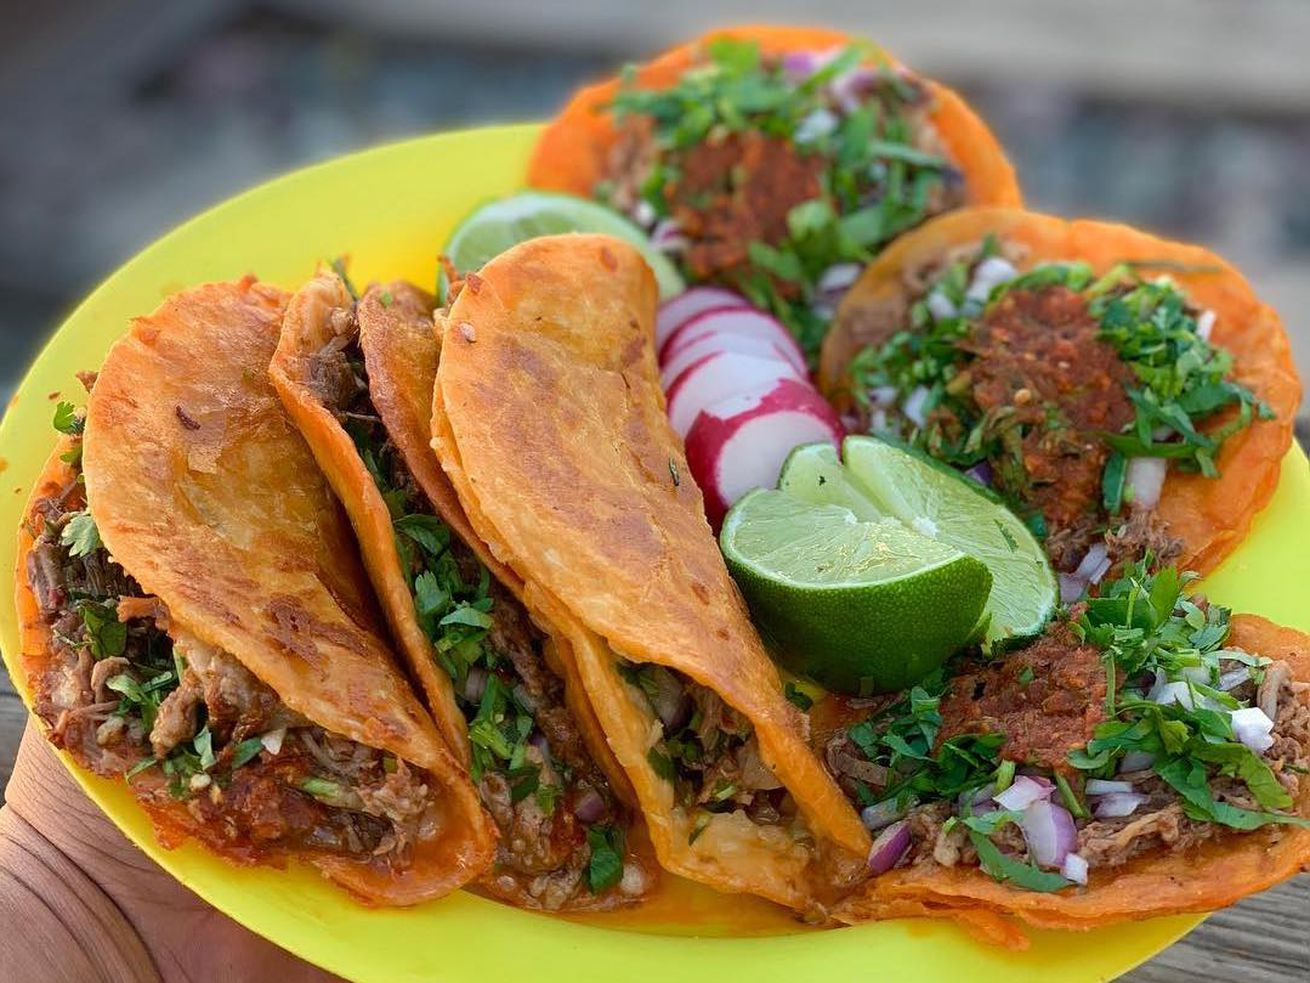 Tacos from Teddy's Red Tacos